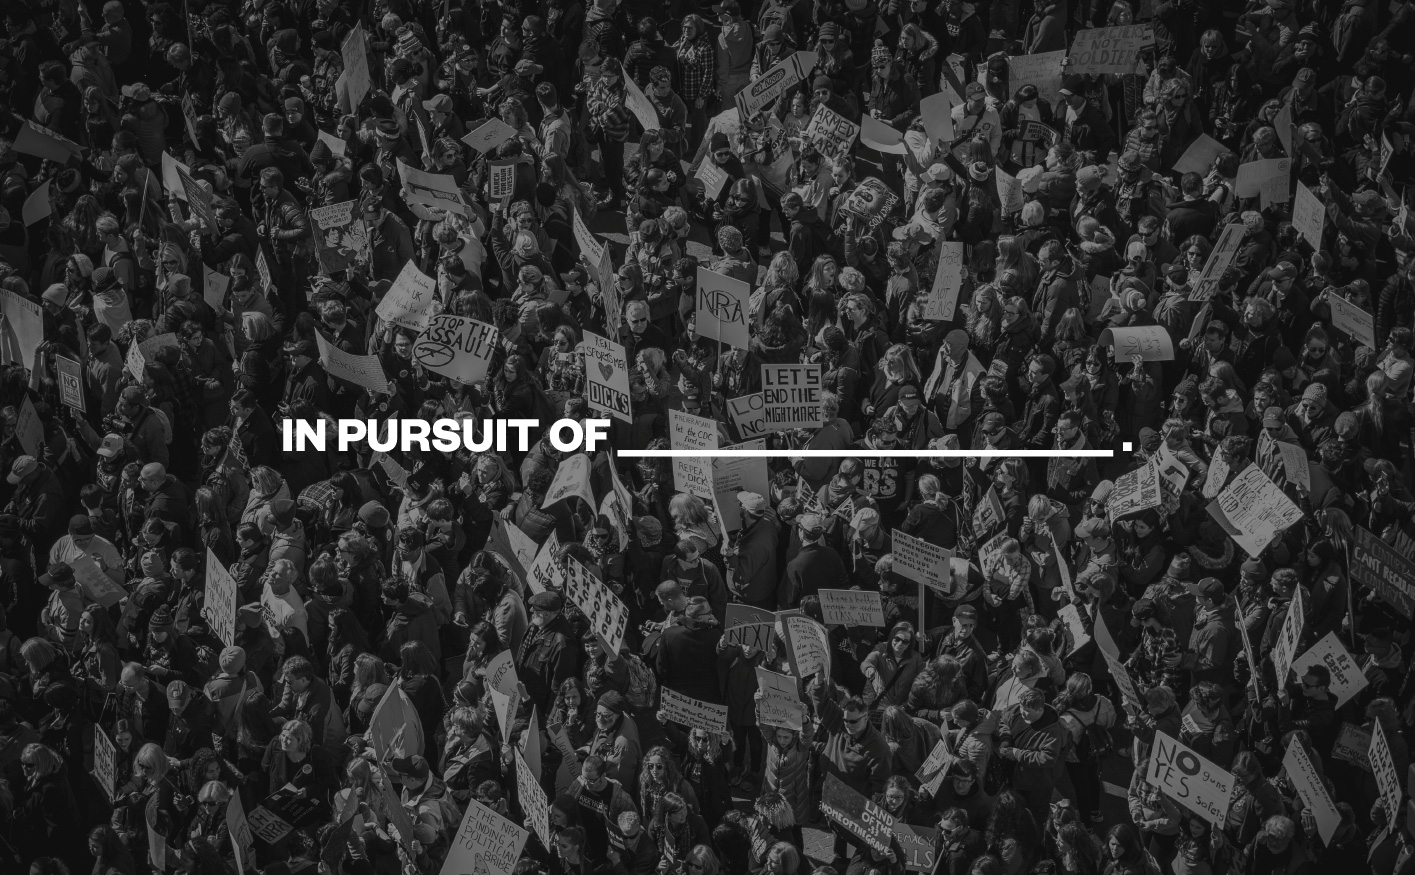 black and white image of crowd with protest signs